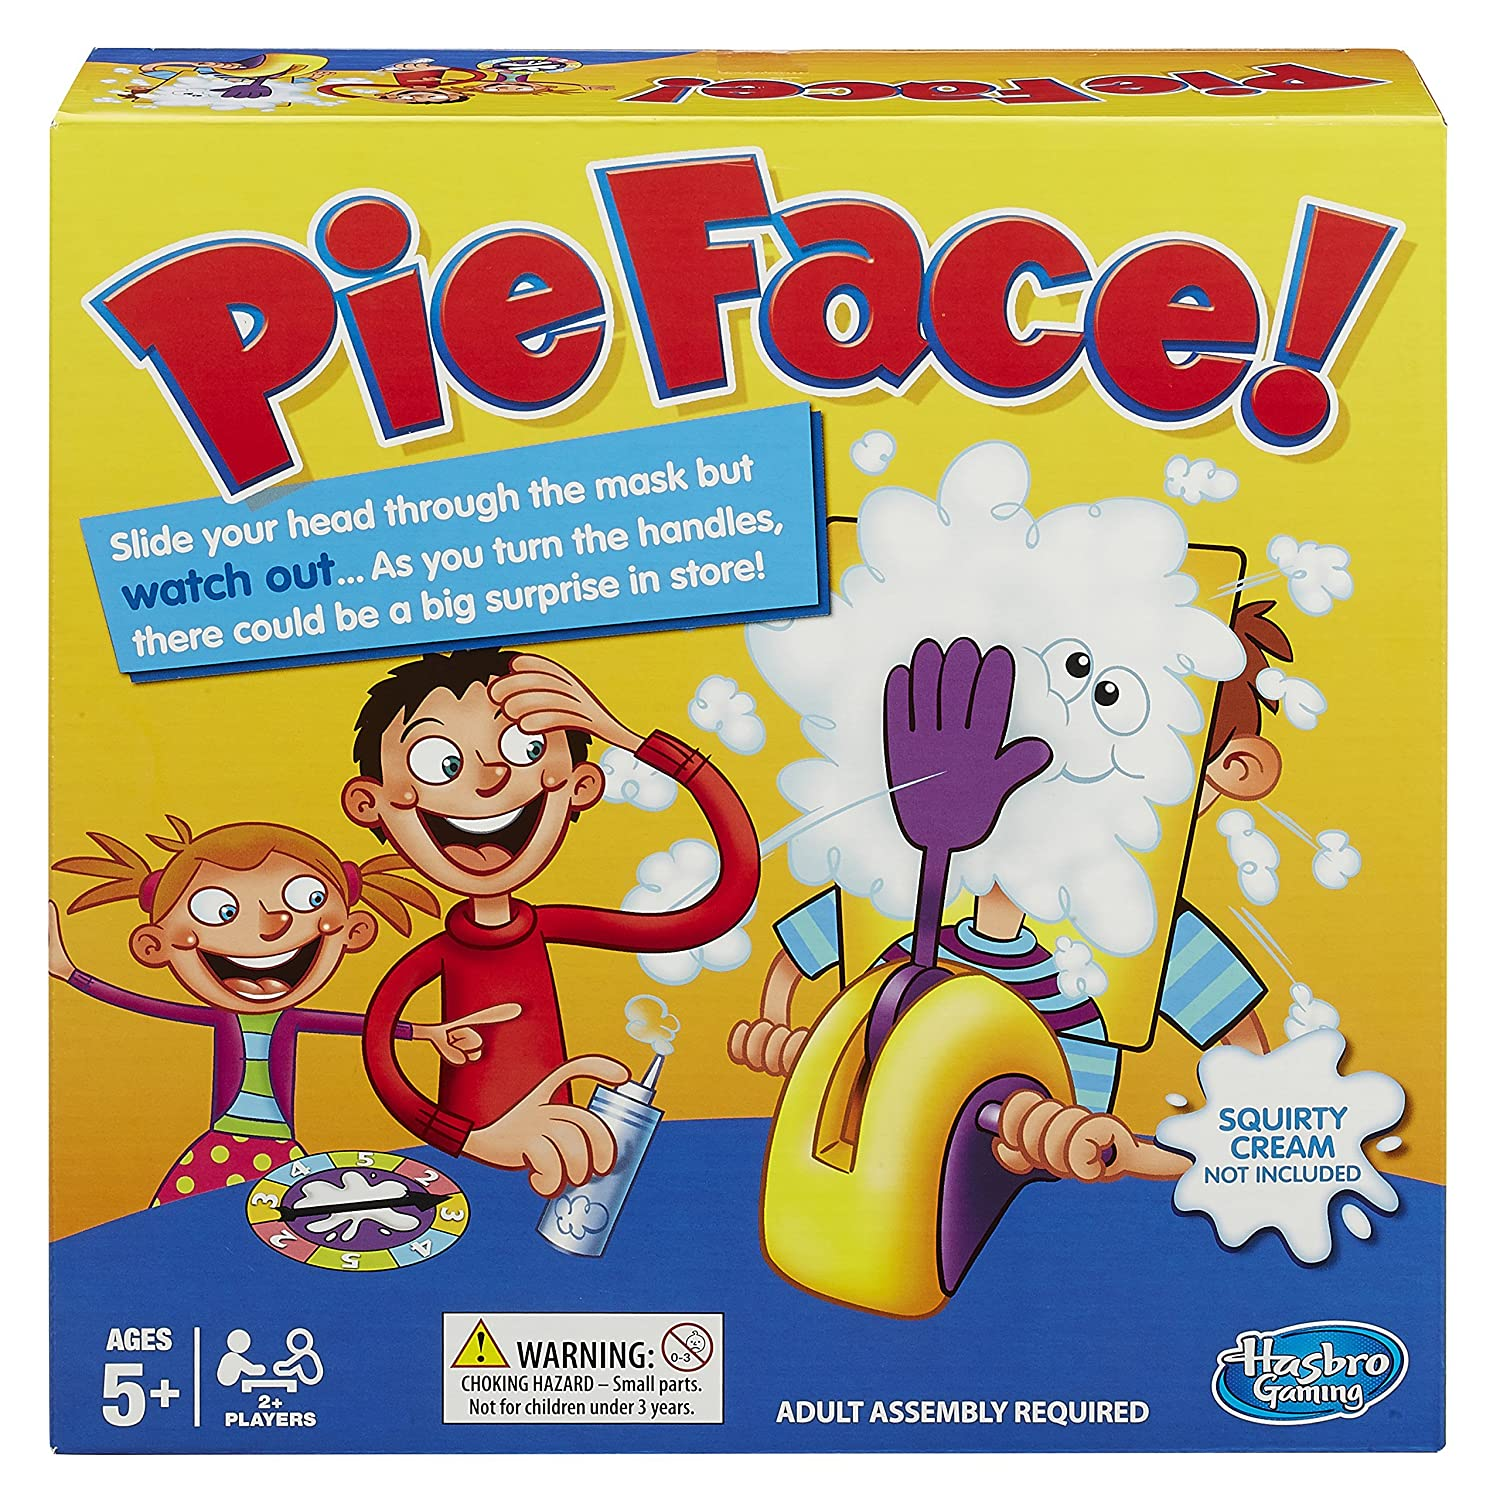 a Pie Face! game set in a box